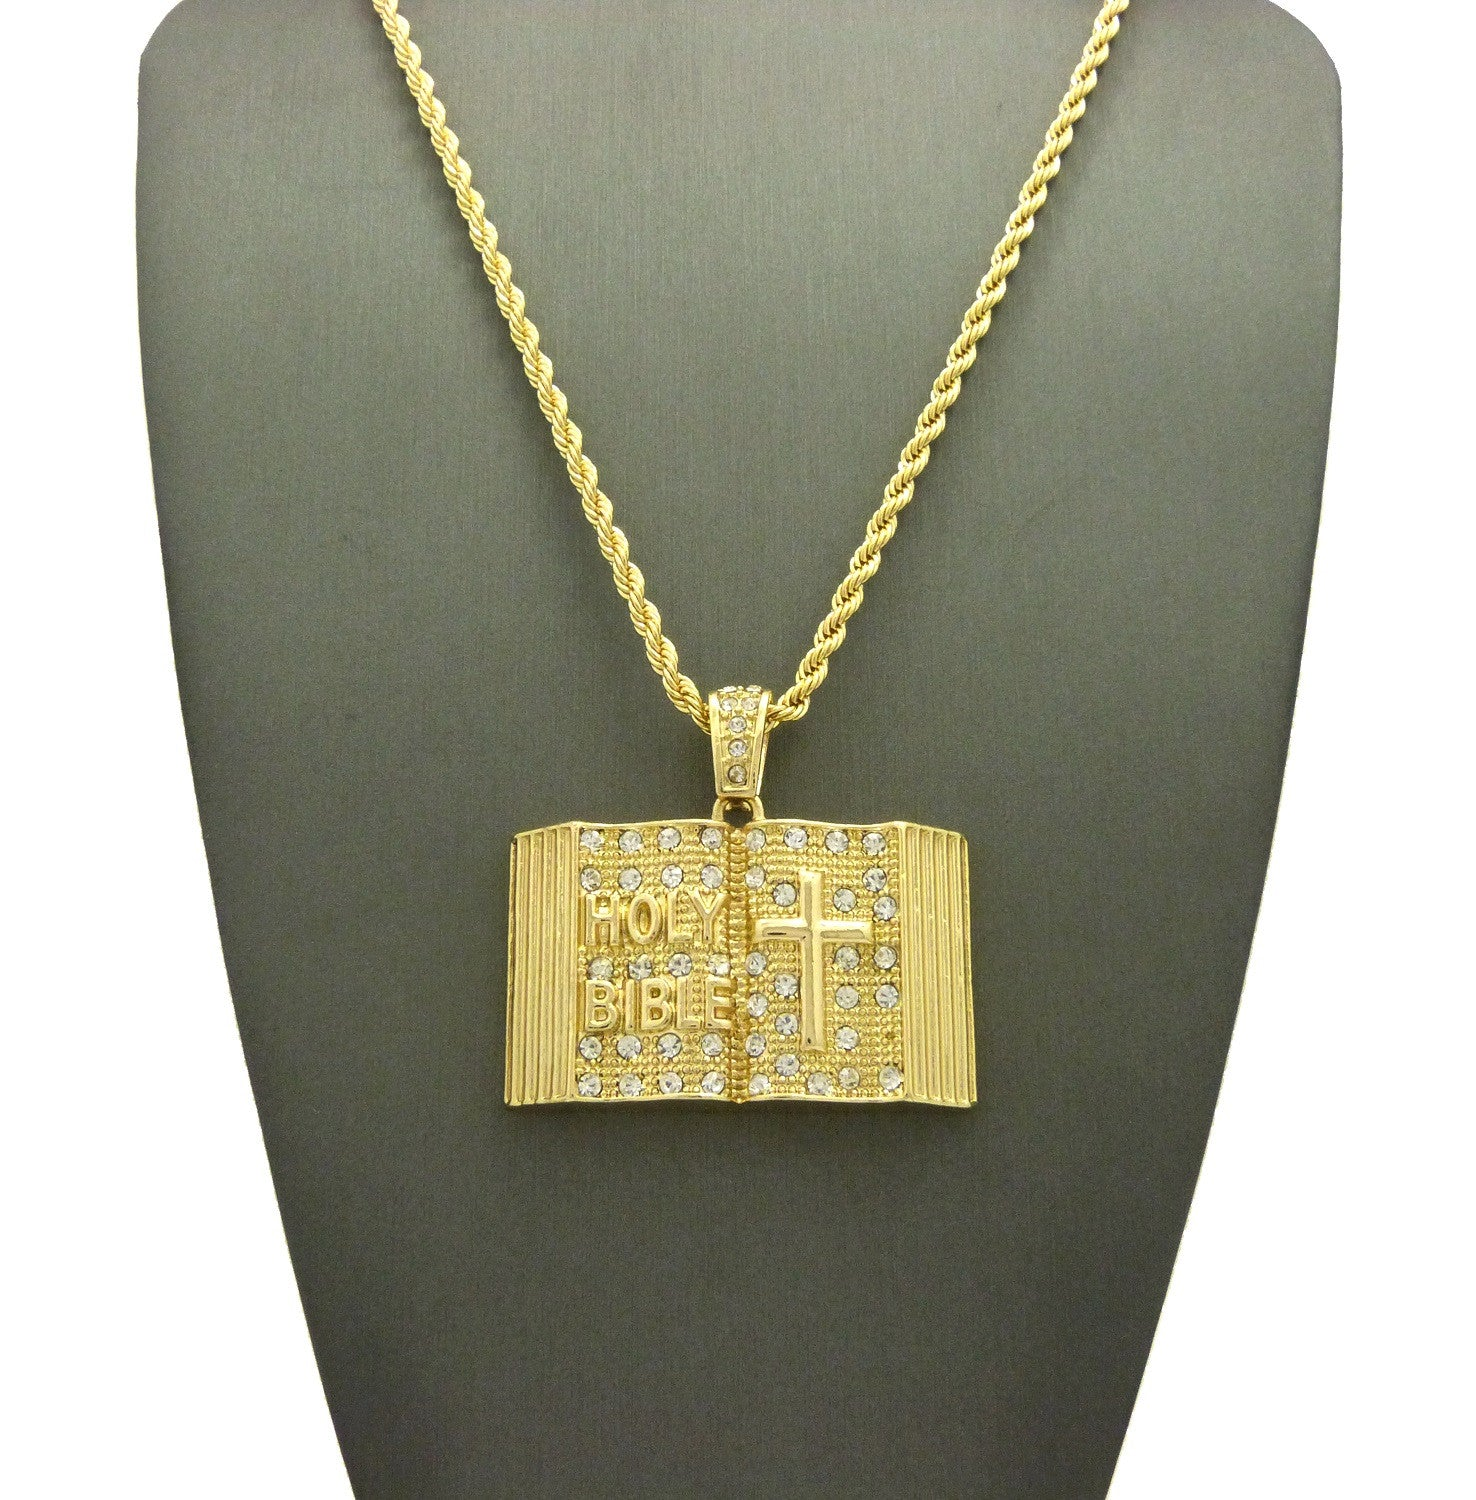 Stone Stud Opened Holy Bible Pendant Cuban Chain Necklace, Gold-Tone